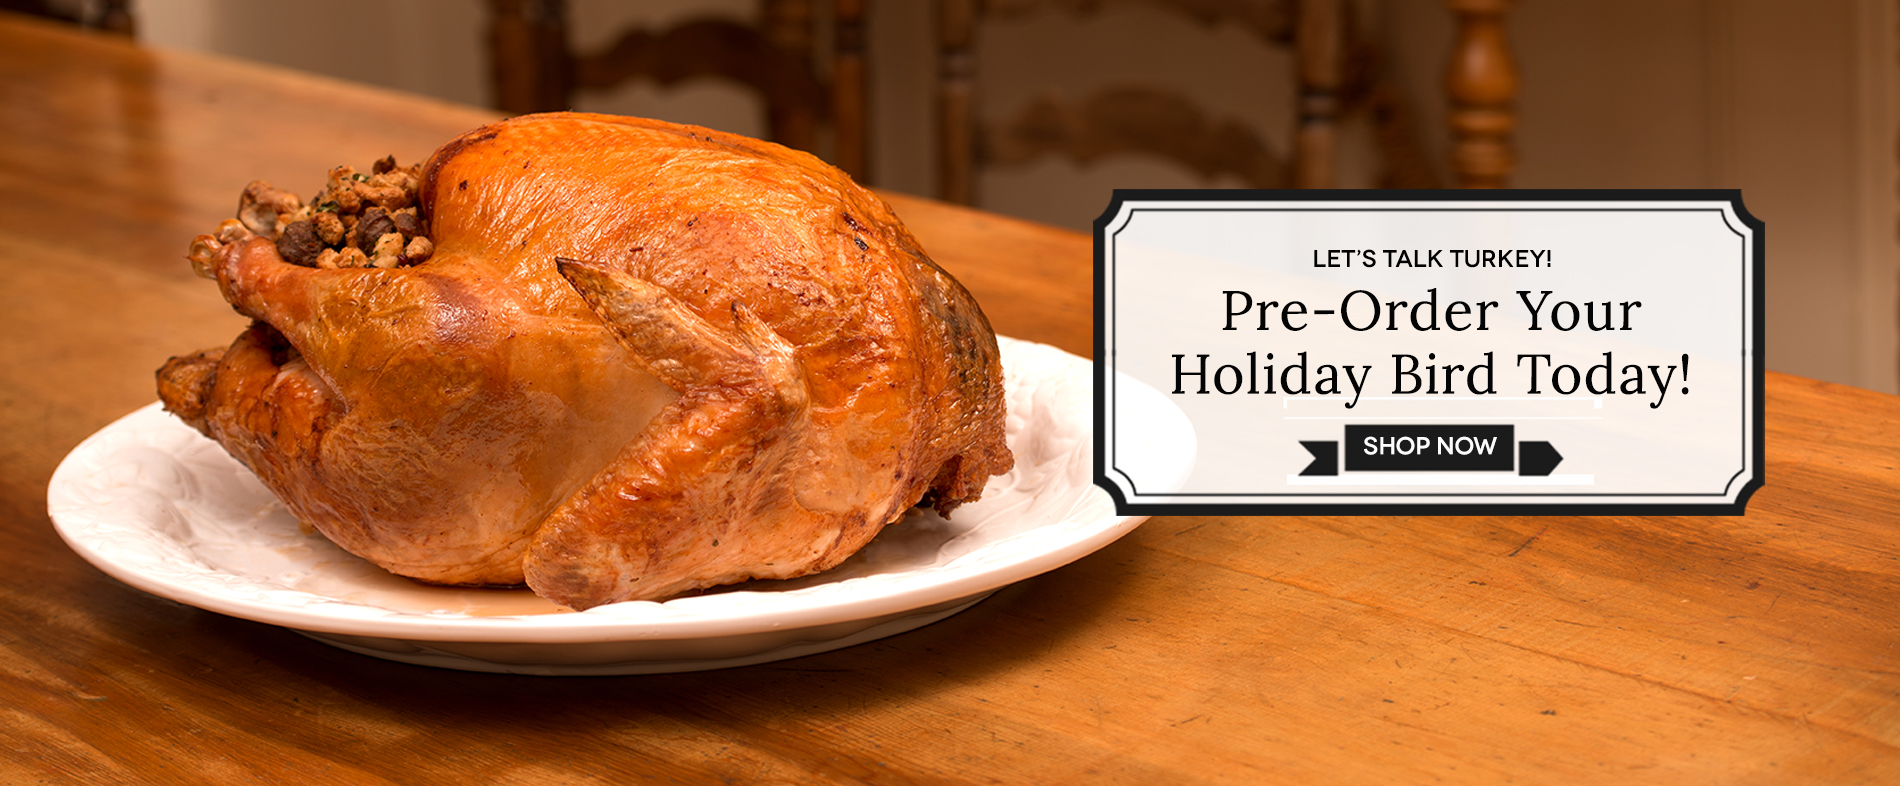 HPC_PreOrderTurkey